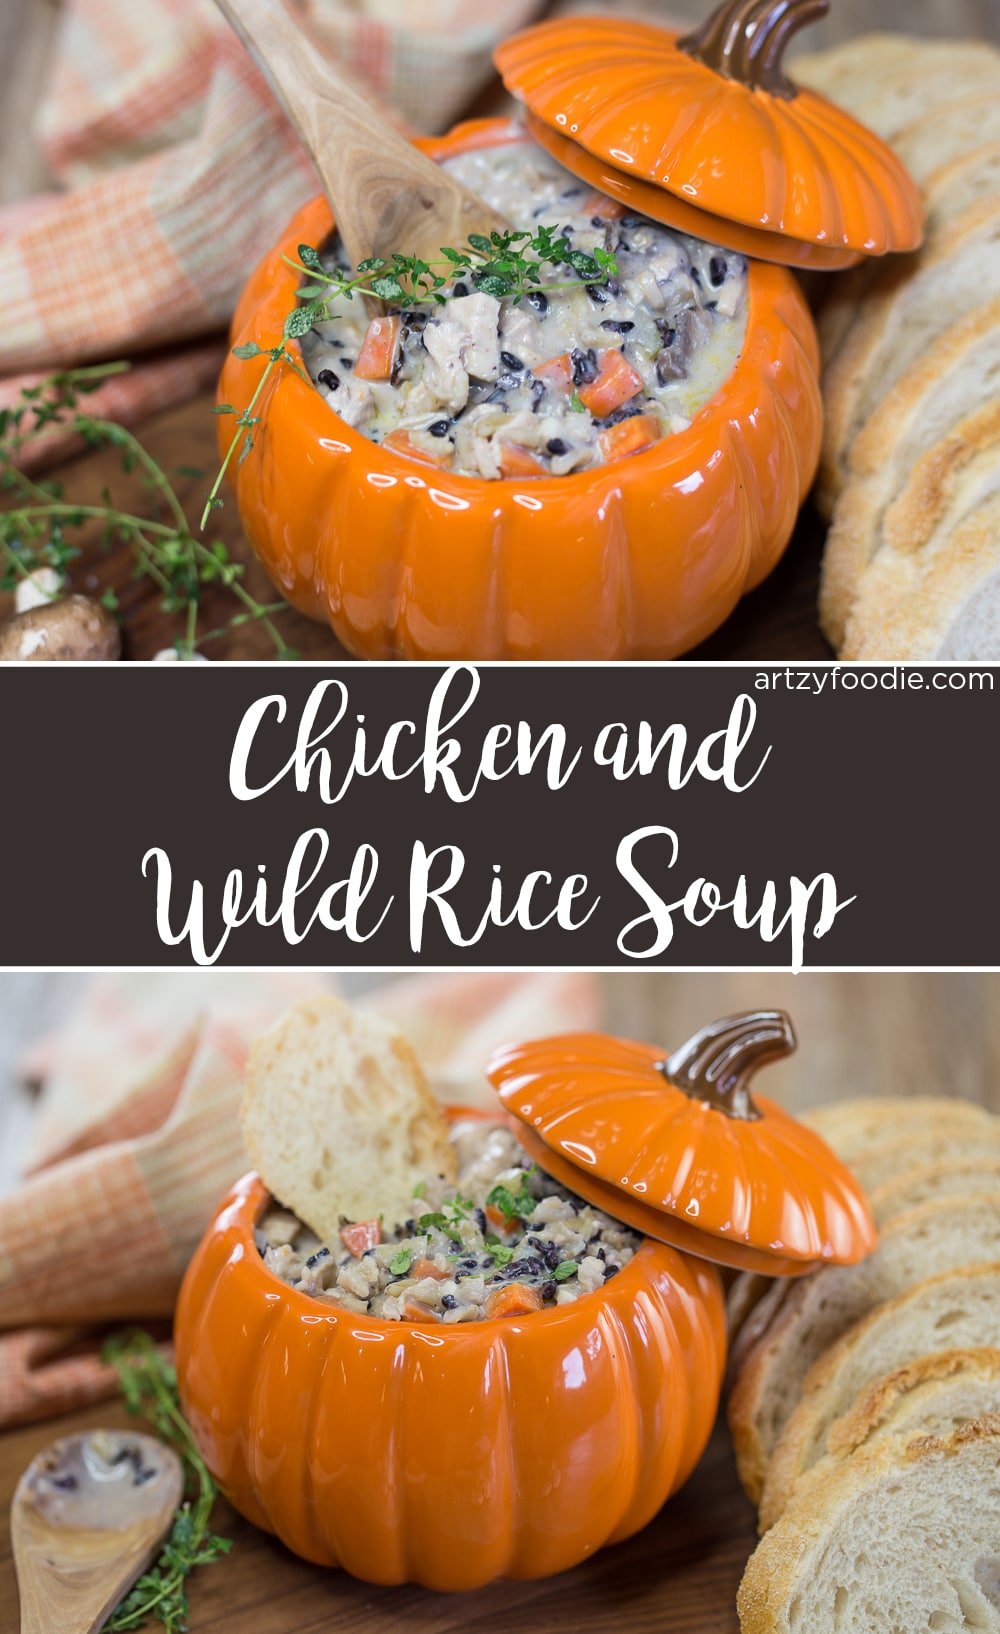 Chicken and wild rice soup is a thick, chunky, hearty, stick to your ribs kind of soup that makes you happy inside when you eat it! |artzyfoodie.com|